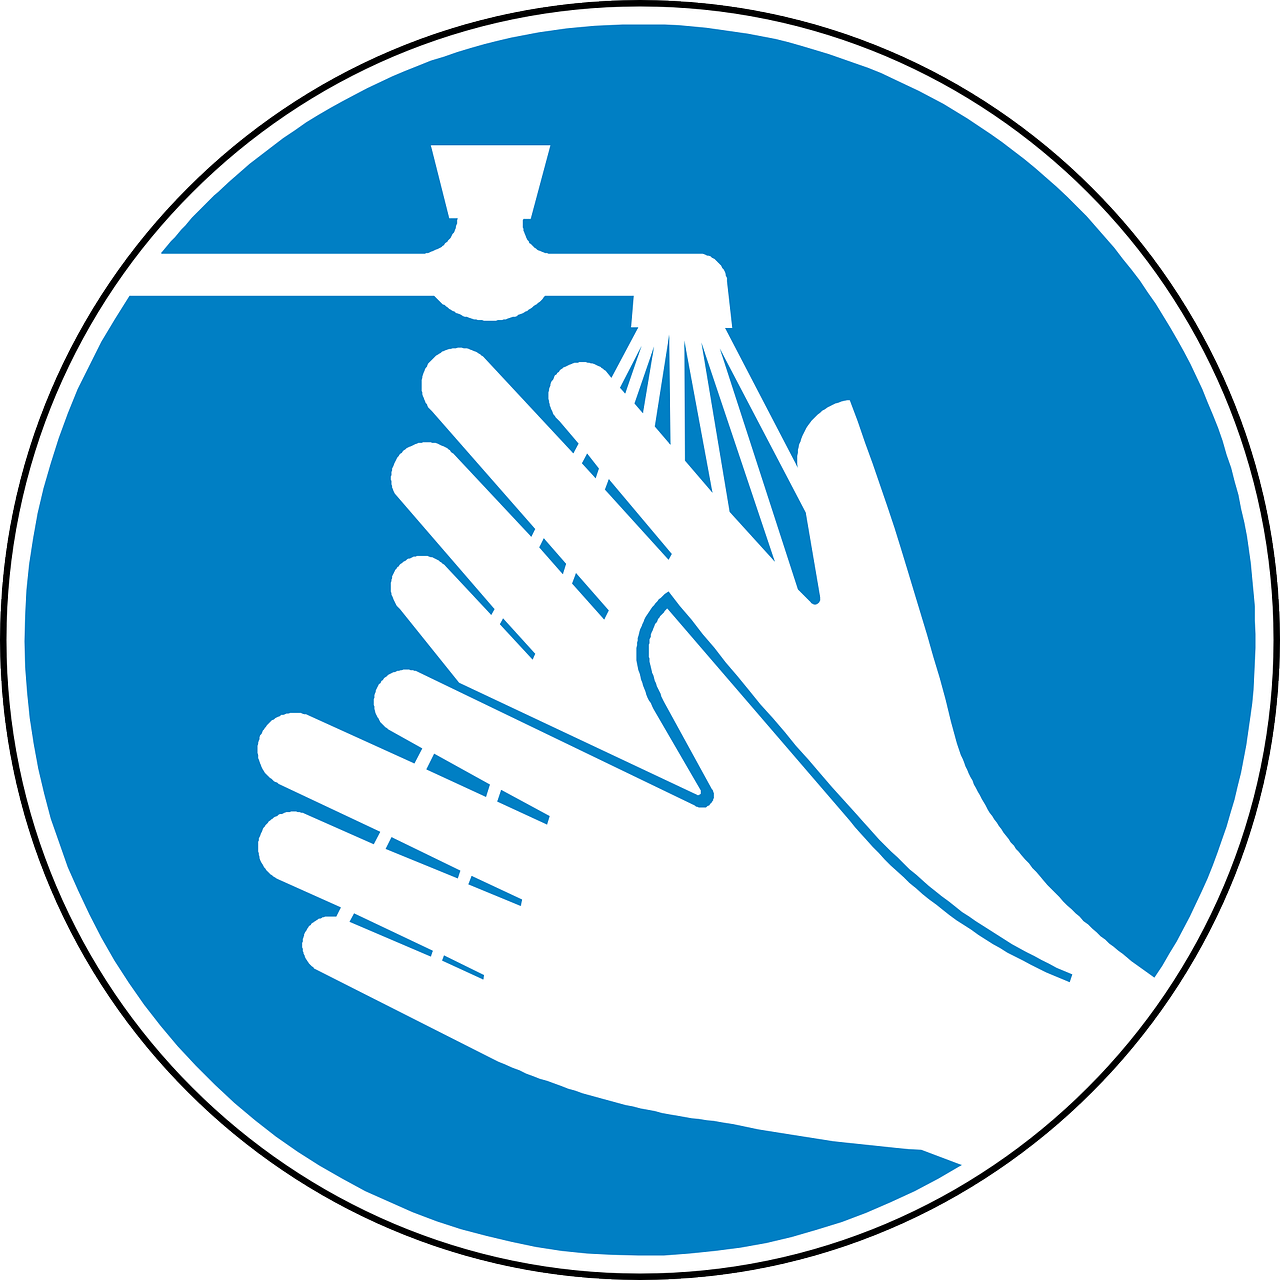 Symbol of hands under a water faucet